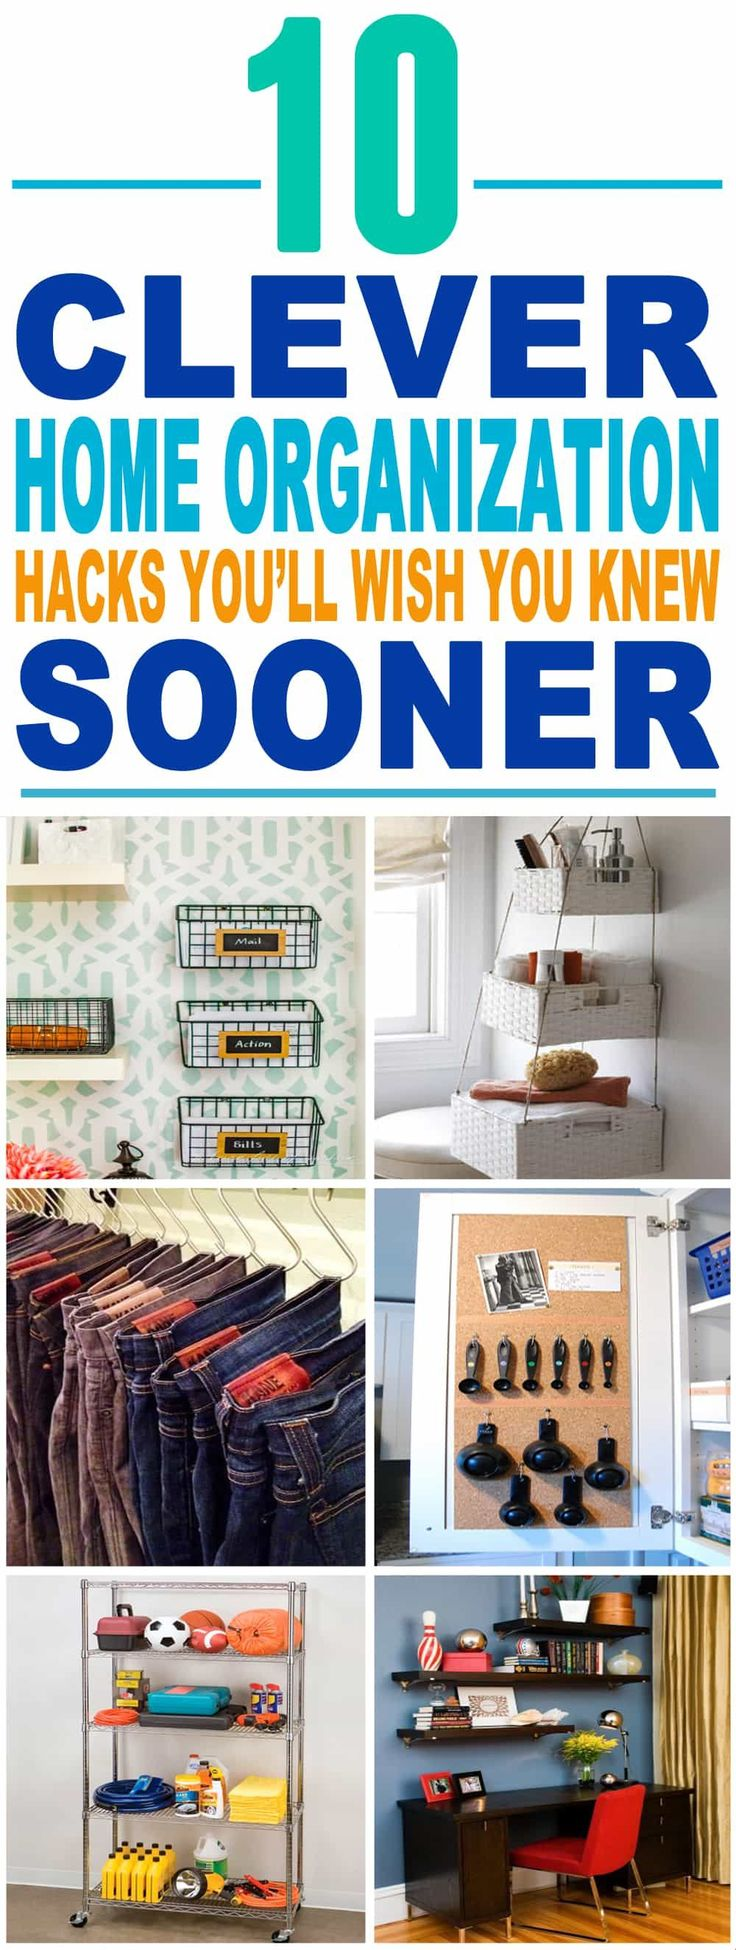 These are the most AMAZING home organization hacks I've seen till now. These home organization tips and tricks will make my life so much easier. Pinning for sure. #homeorganization